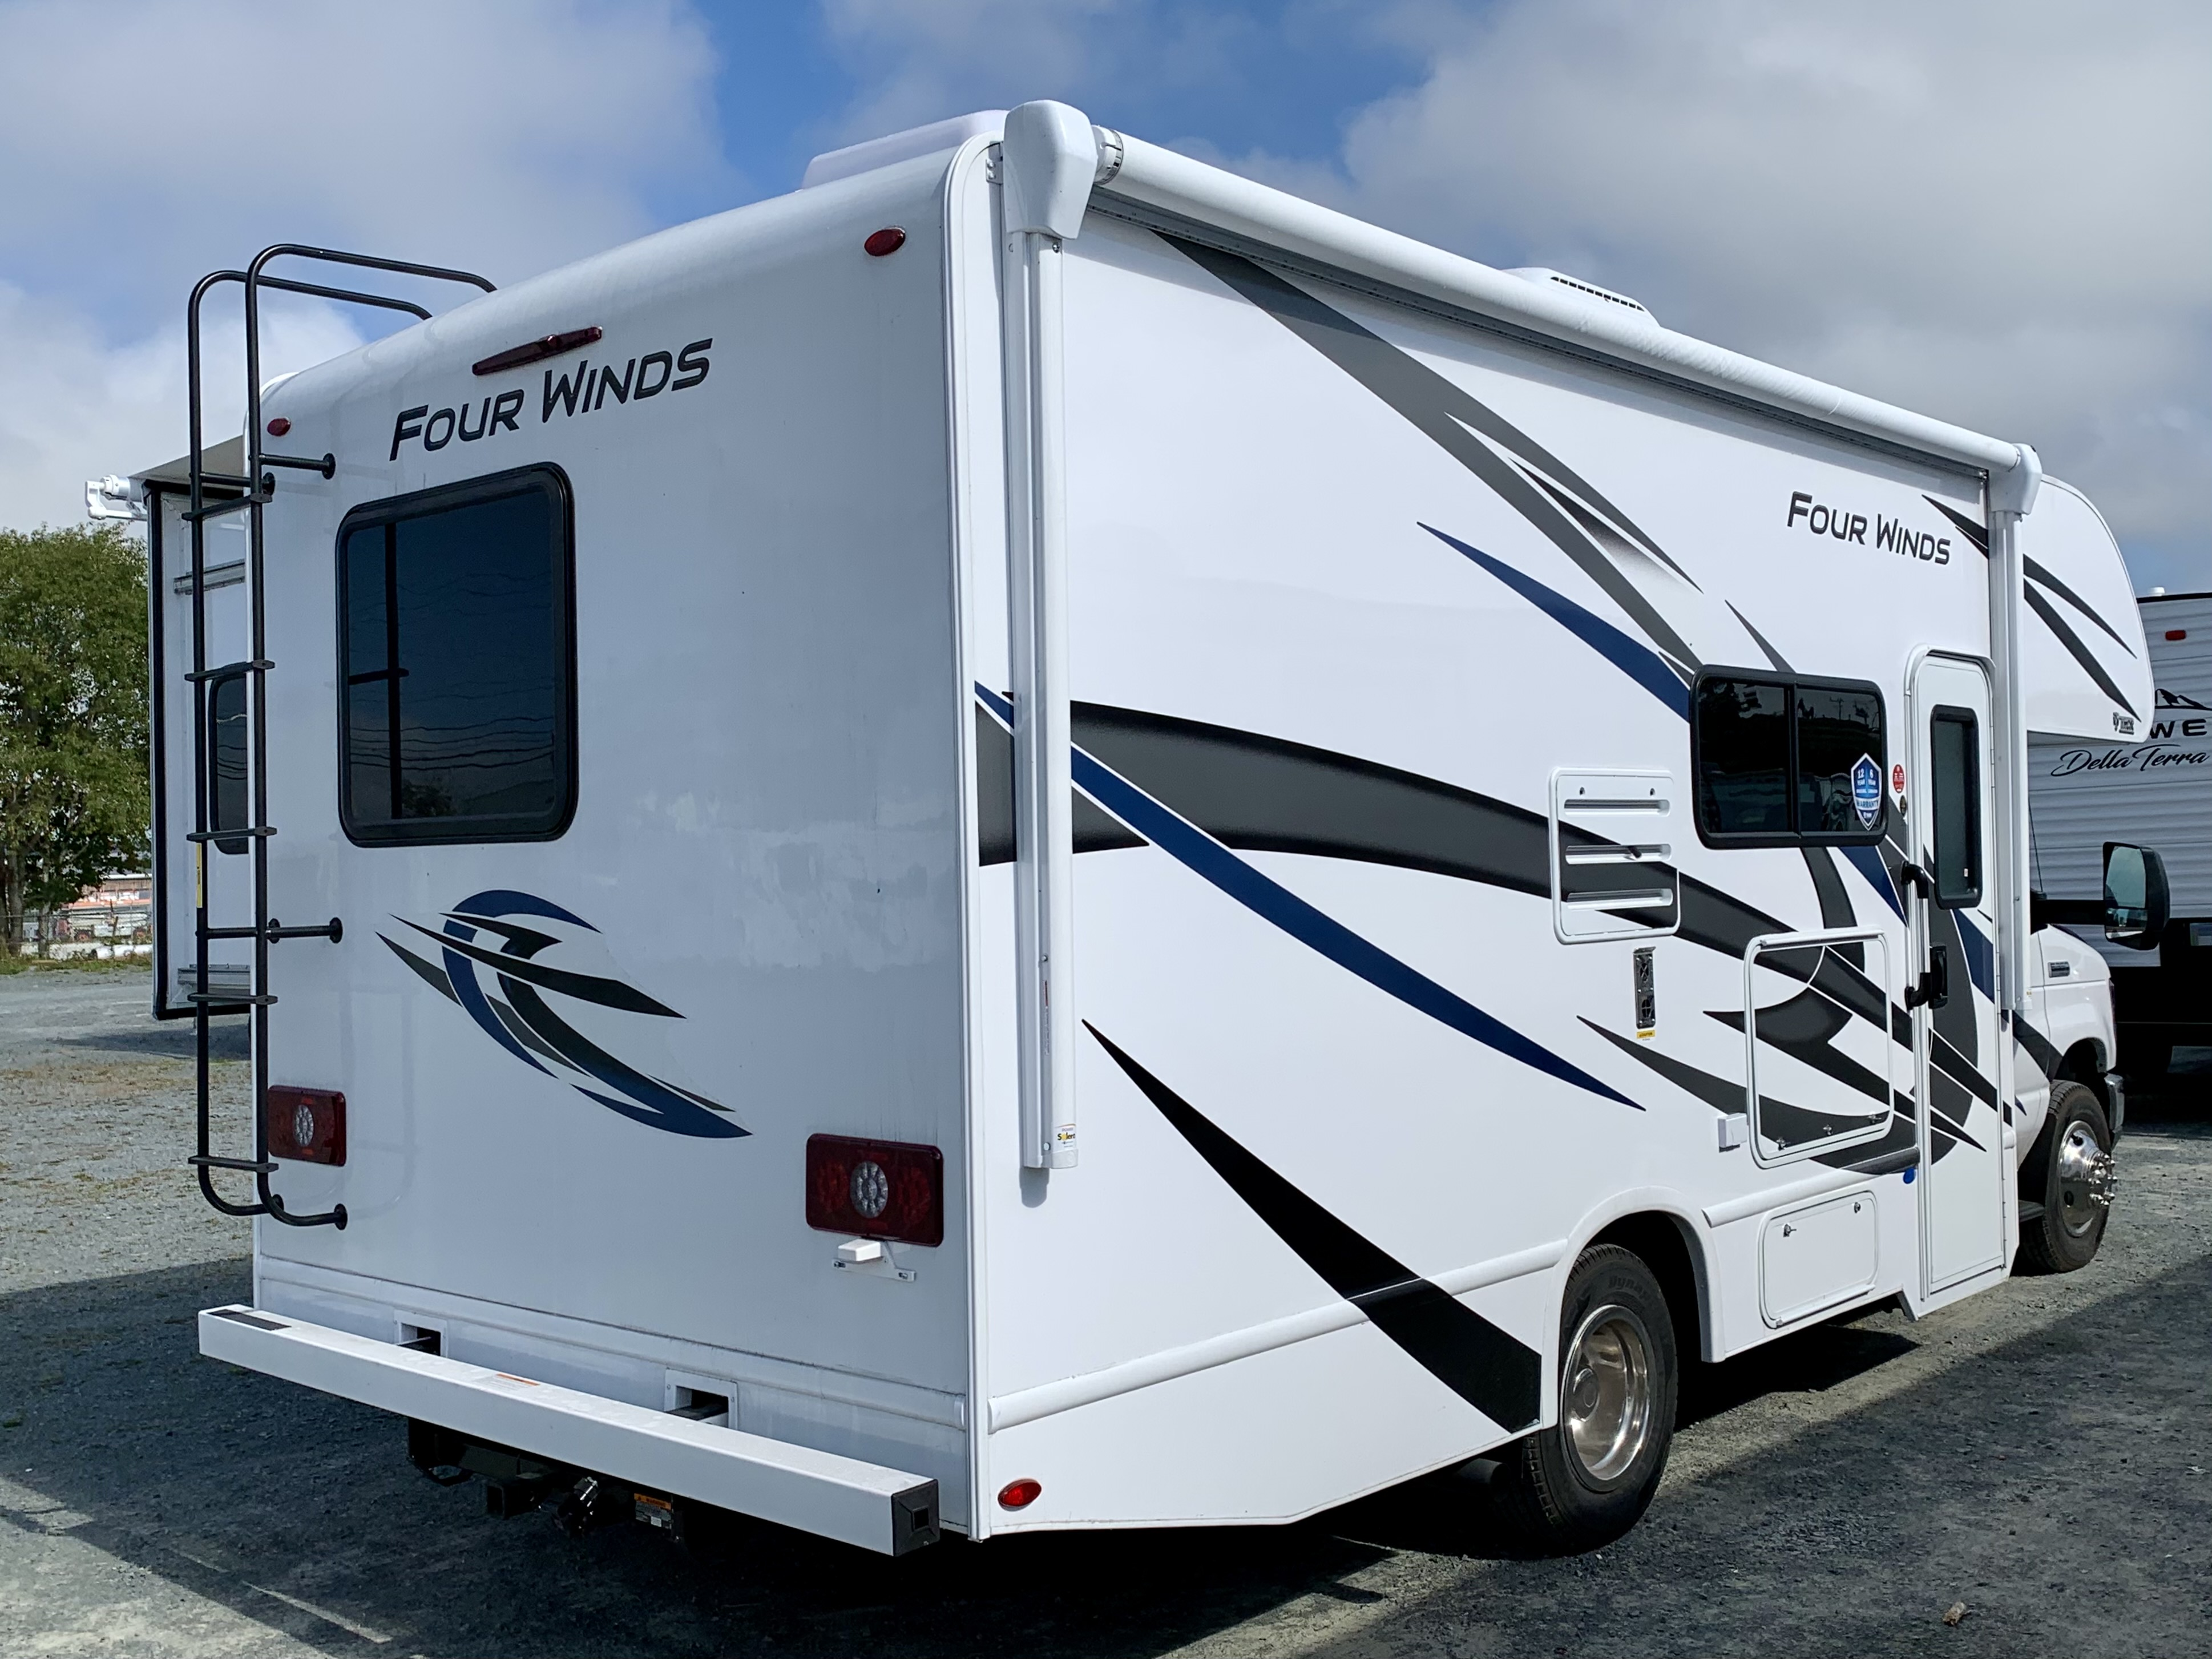 2021 THOR MOTOR COACH FOURWINDS 22B NEW CLASS C MOTORHOME FOR SALE IN HALIFAX NS